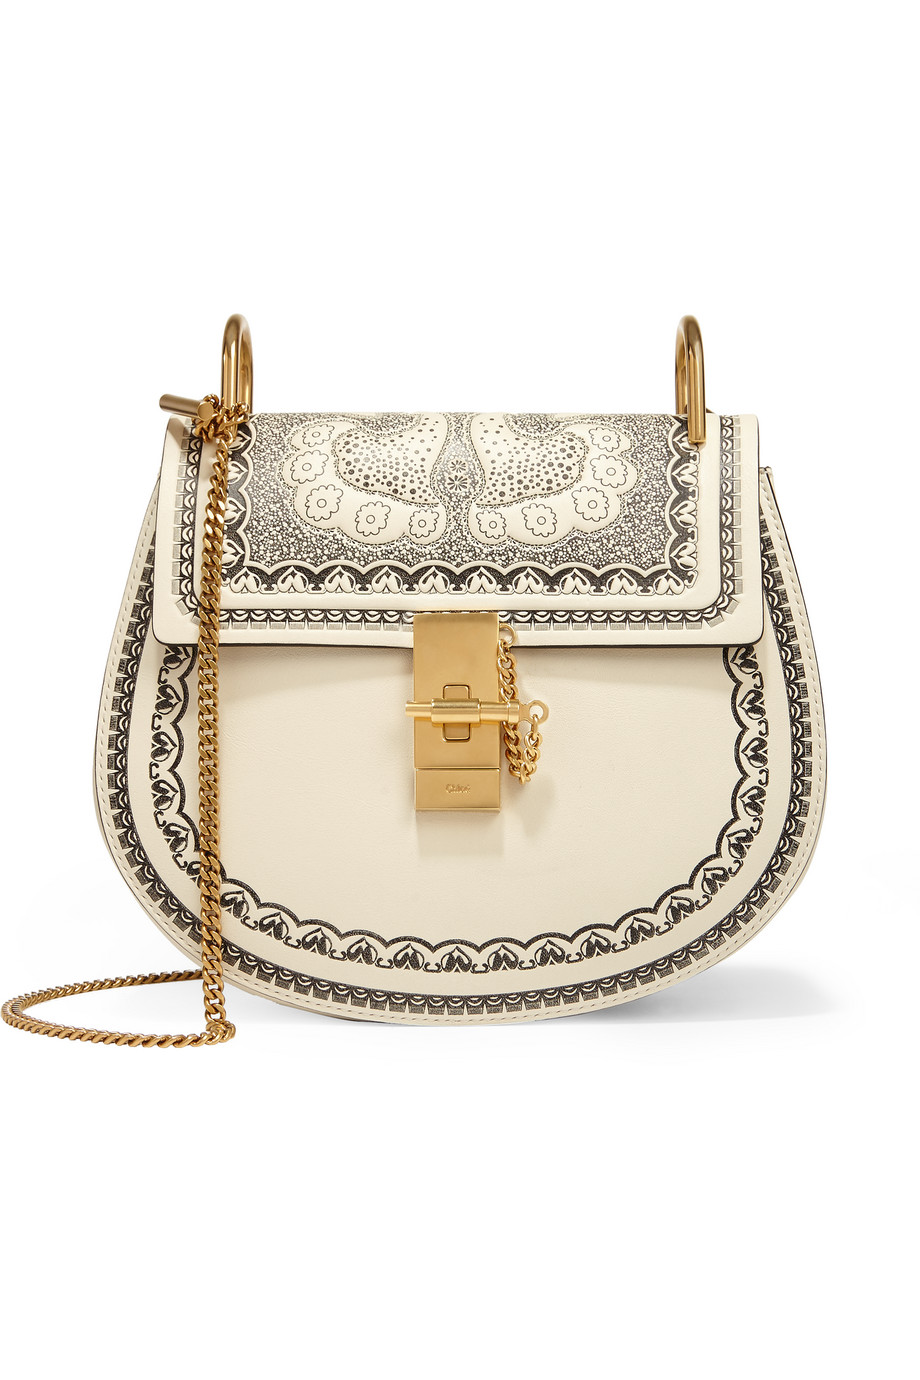 Chloé Drew Small Embossed Textured-Leather Shoulder Bag, Off-White, Women's, Size: One size